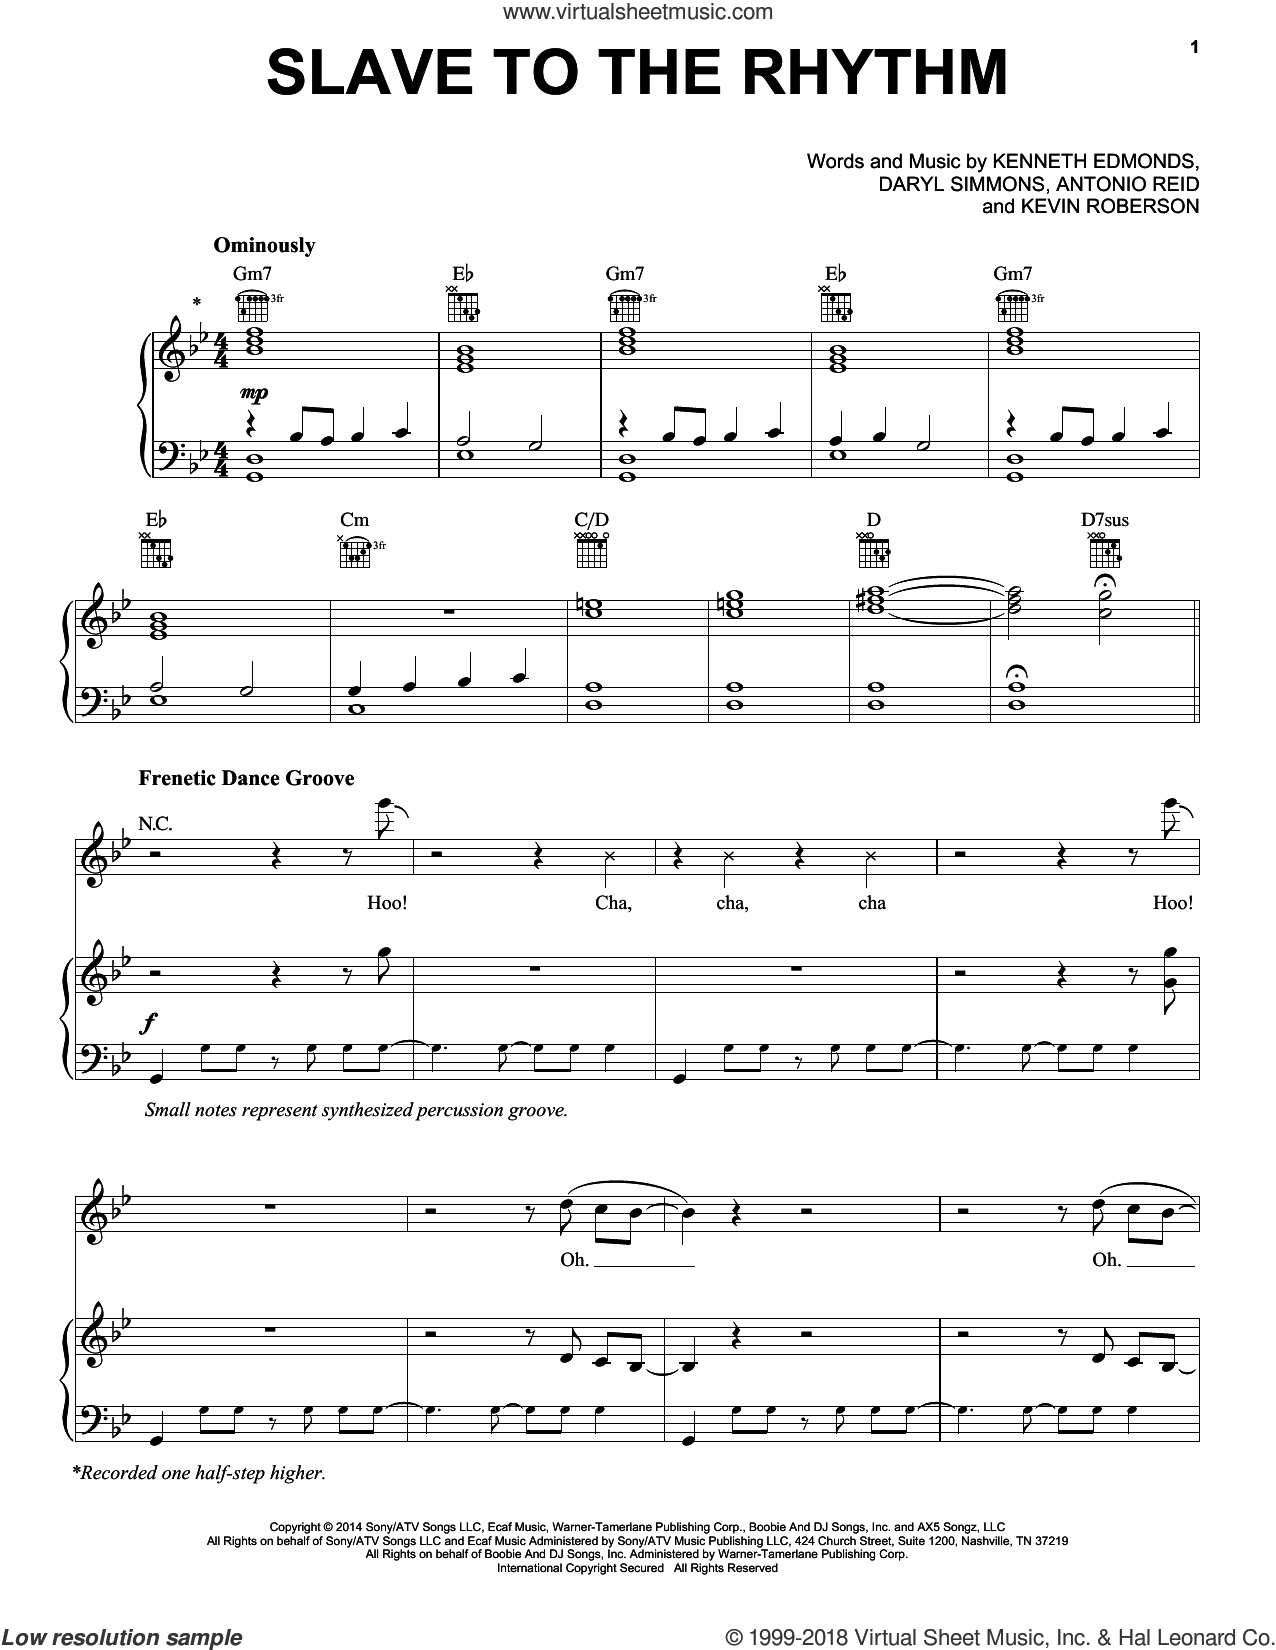 Slave To The Rhythm sheet music for voice, piano or guitar by Michael Jackson, Antonio Reid, Daryl Simmons, Kenneth Edmonds and Kevin Roberson, intermediate skill level